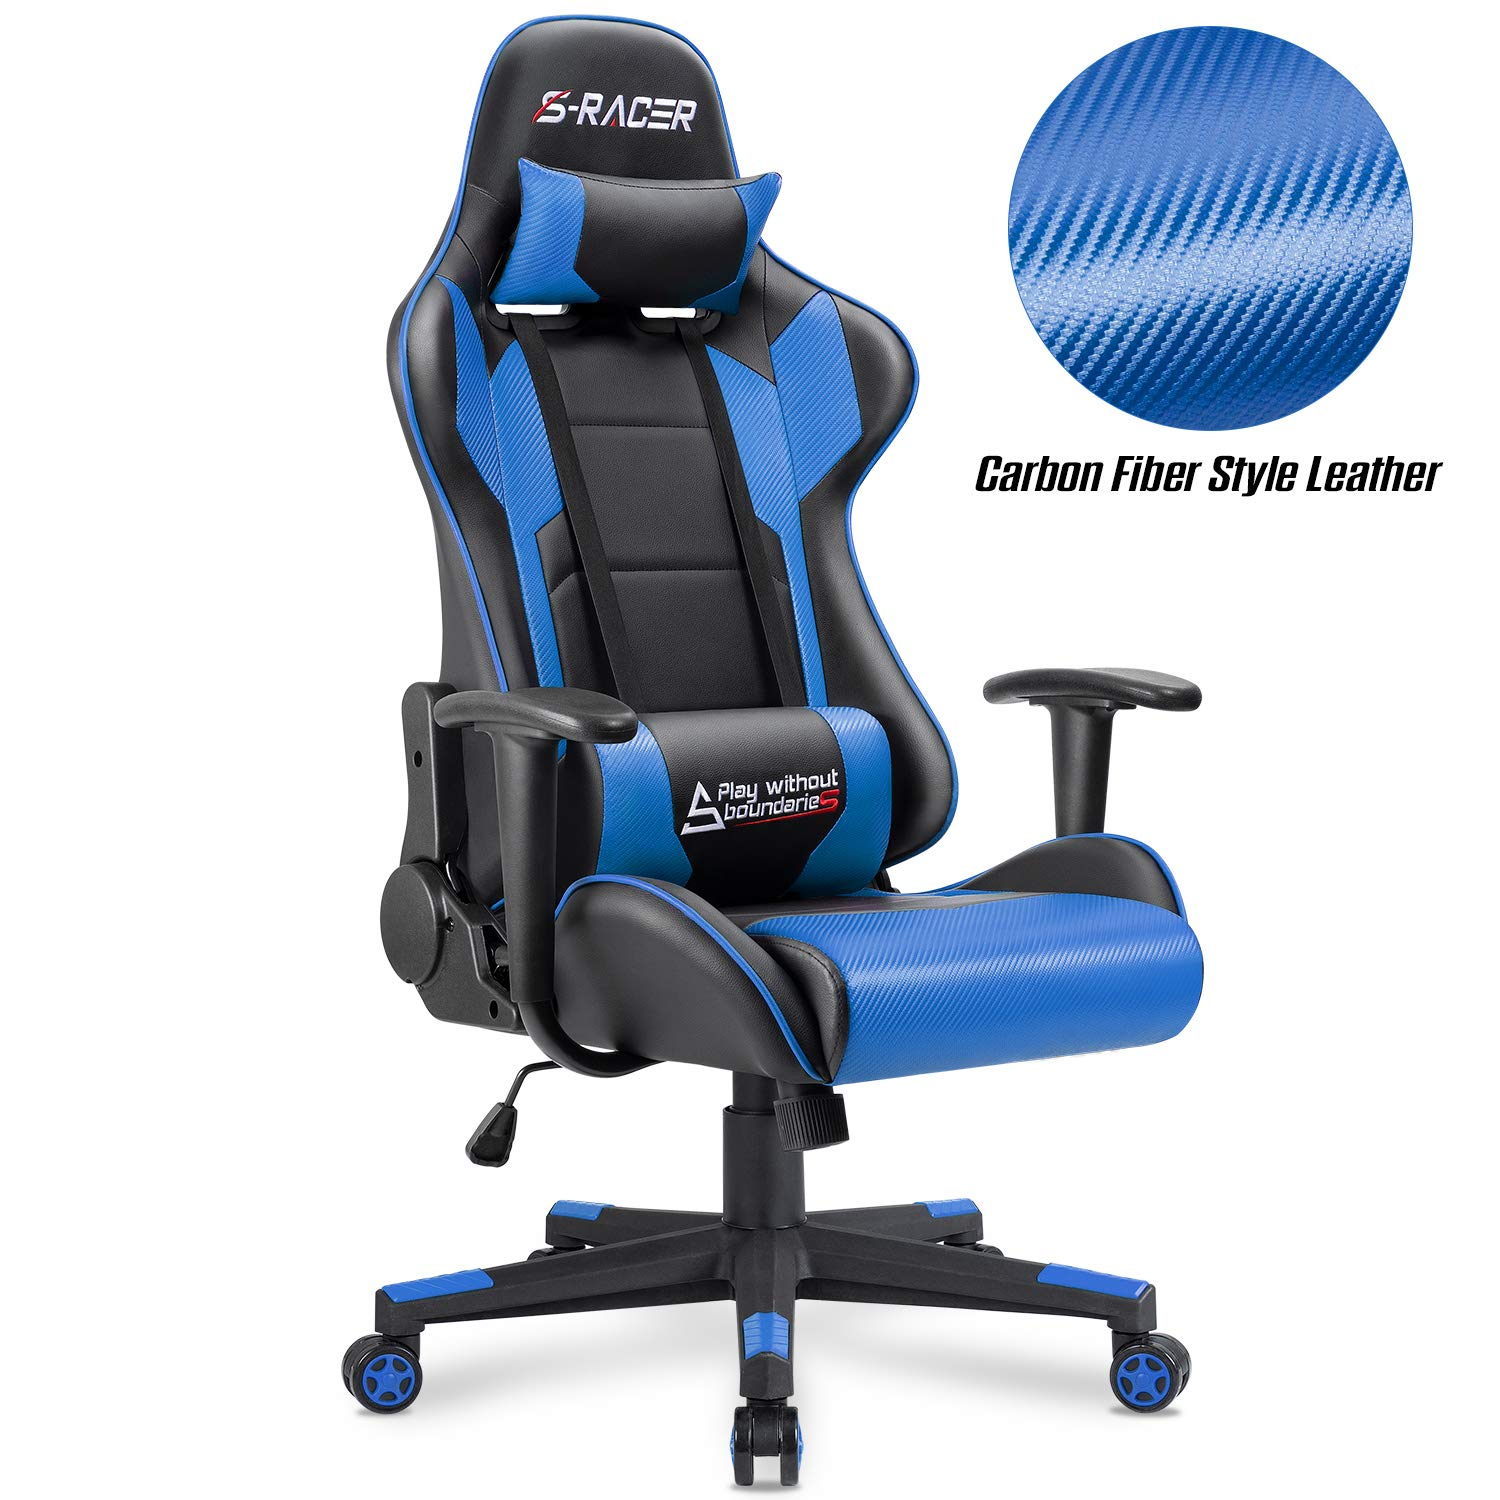 Furniwell Gaming Chair Racing Office Chair Computer Desk Chair Adjustable Swivel High Back Carbon Fiber Style PU Leather Executive Ergonomic Chair with Headrest and Lumbar Support (Blue) by Furniwell